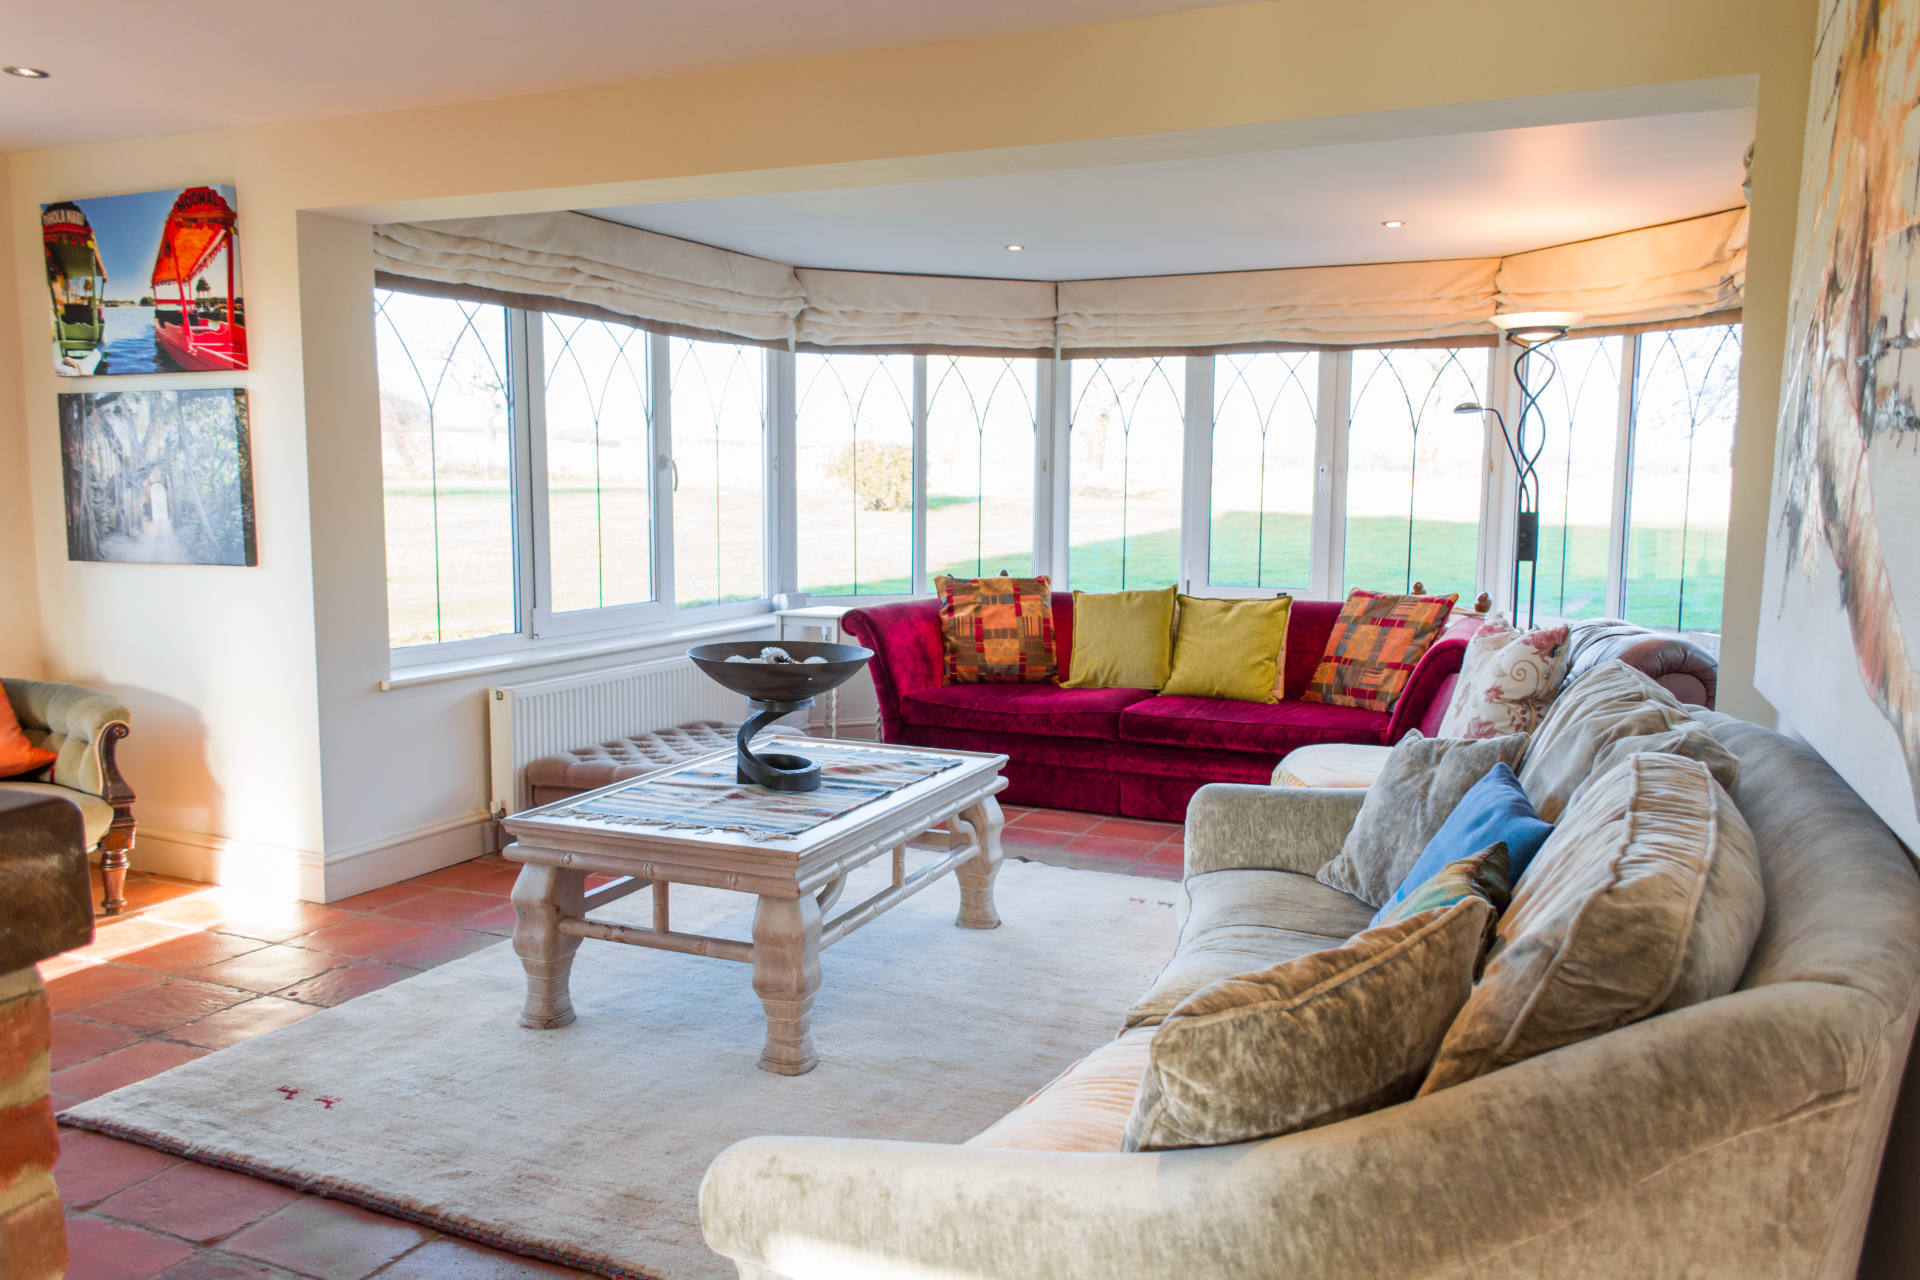 Manor Lodge living room with sofas, coffee table and surrounding large glass windows looking over the garden.